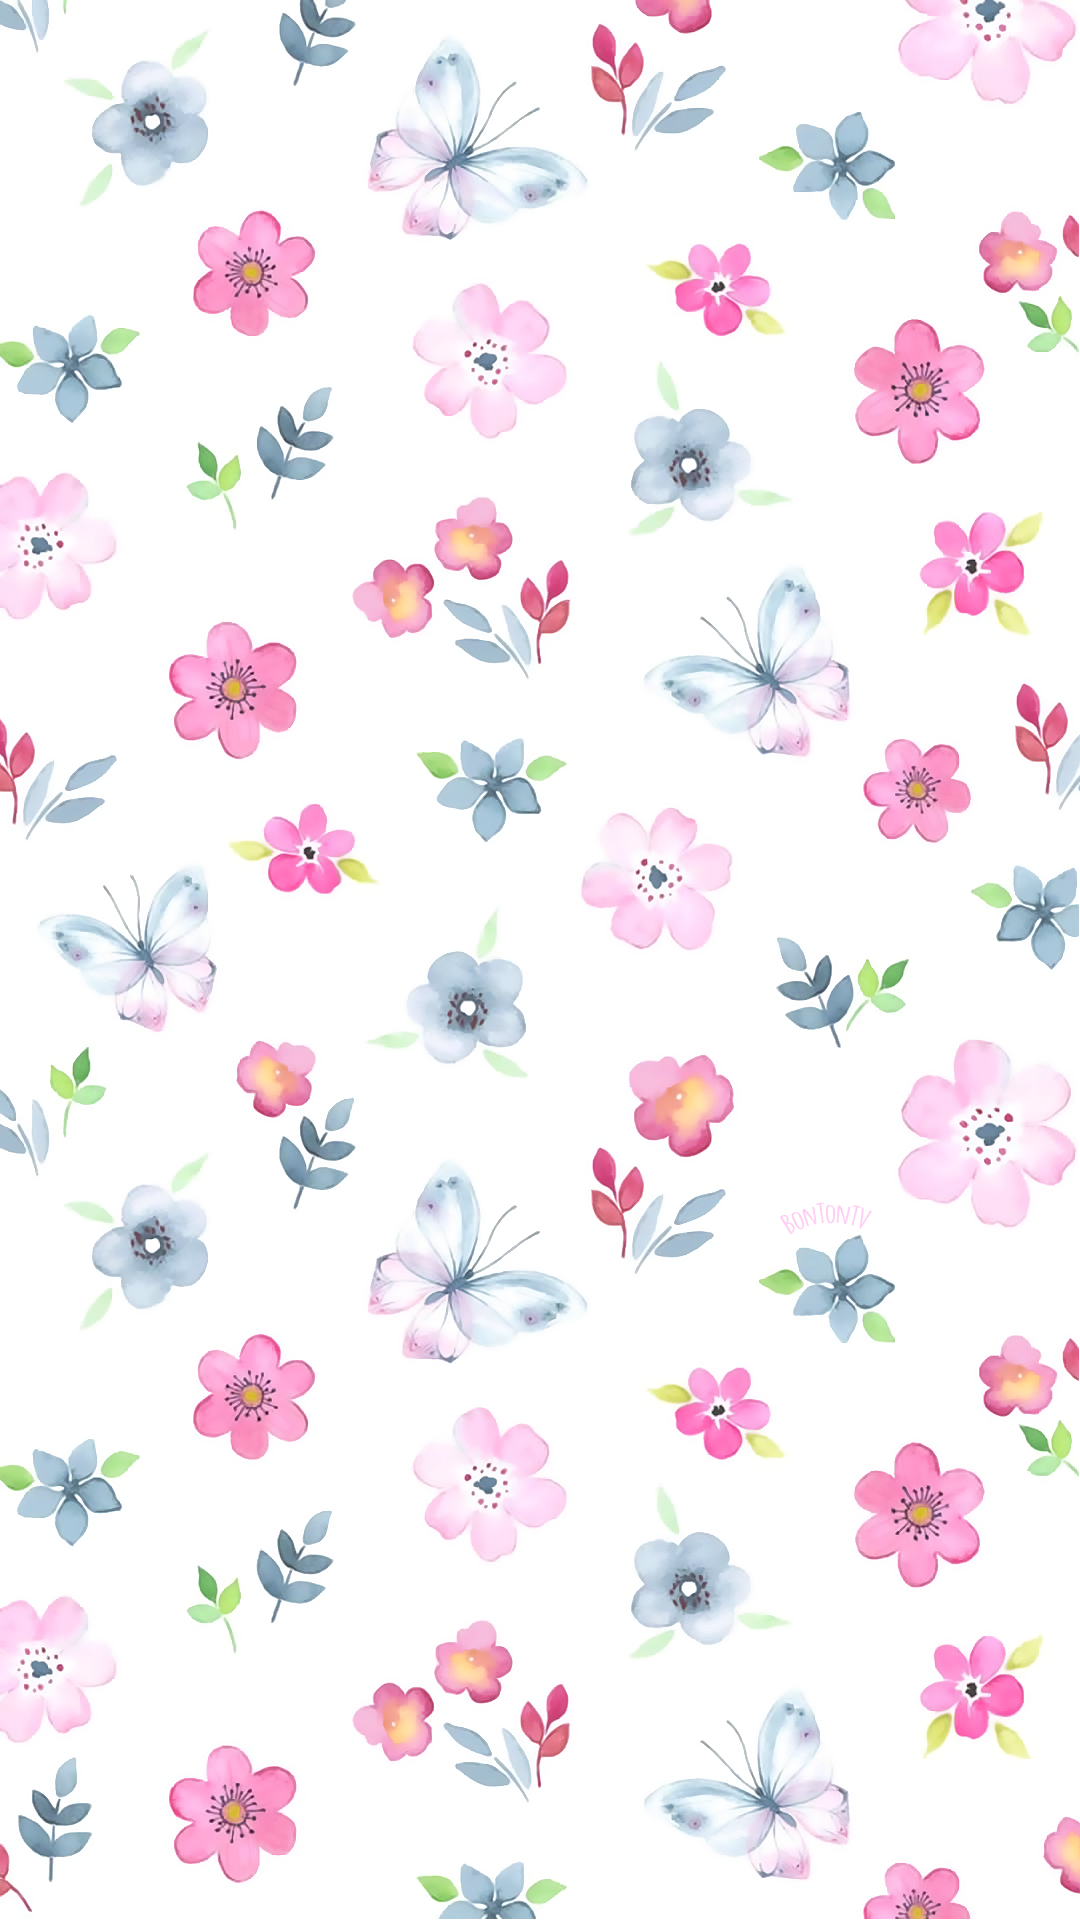 Phone Wallpapers Hd Watercolor Cute Pattern By Bonton Tv Free Backgrounds 1080x1920 Wallpapers Iphone Smartphone Here You Can Find A Collection Of Elegan Wallpaper Iphone Cute Flower Phone Wallpaper Flower Wallpaper